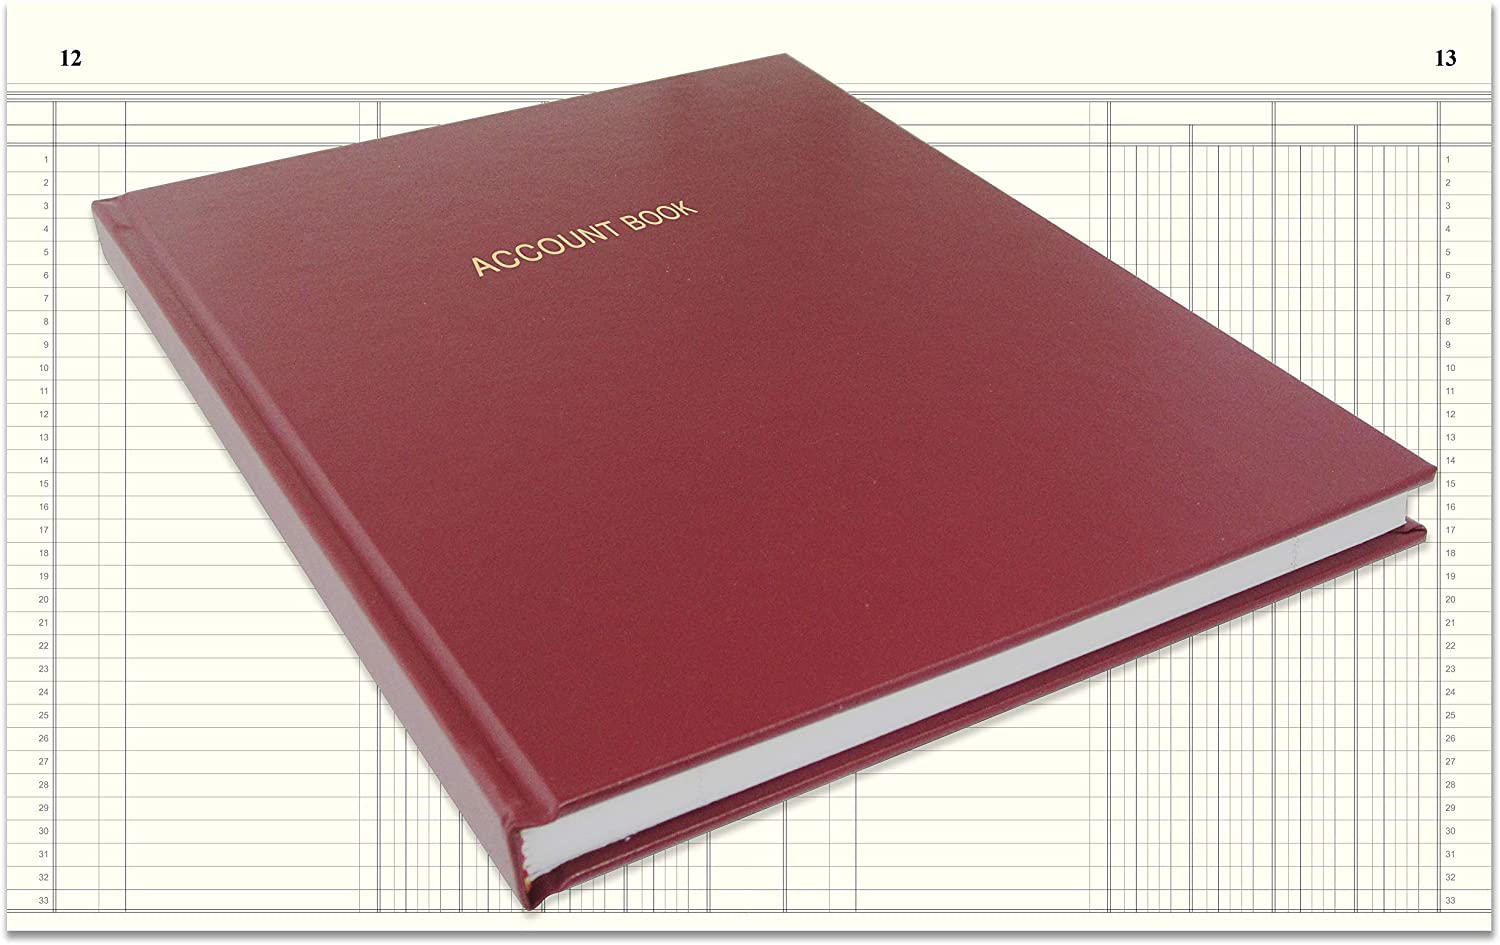 "BookFactory Account Book/Ledger Book/Accounting Ledger/Account Notebook (4 Column Columnar Book Format) - 96 Pages, 8"" x 10"", Burgundy Cover, Smyth Sewn Hardbound (ACT-096-S4CM-A-LMT16)"